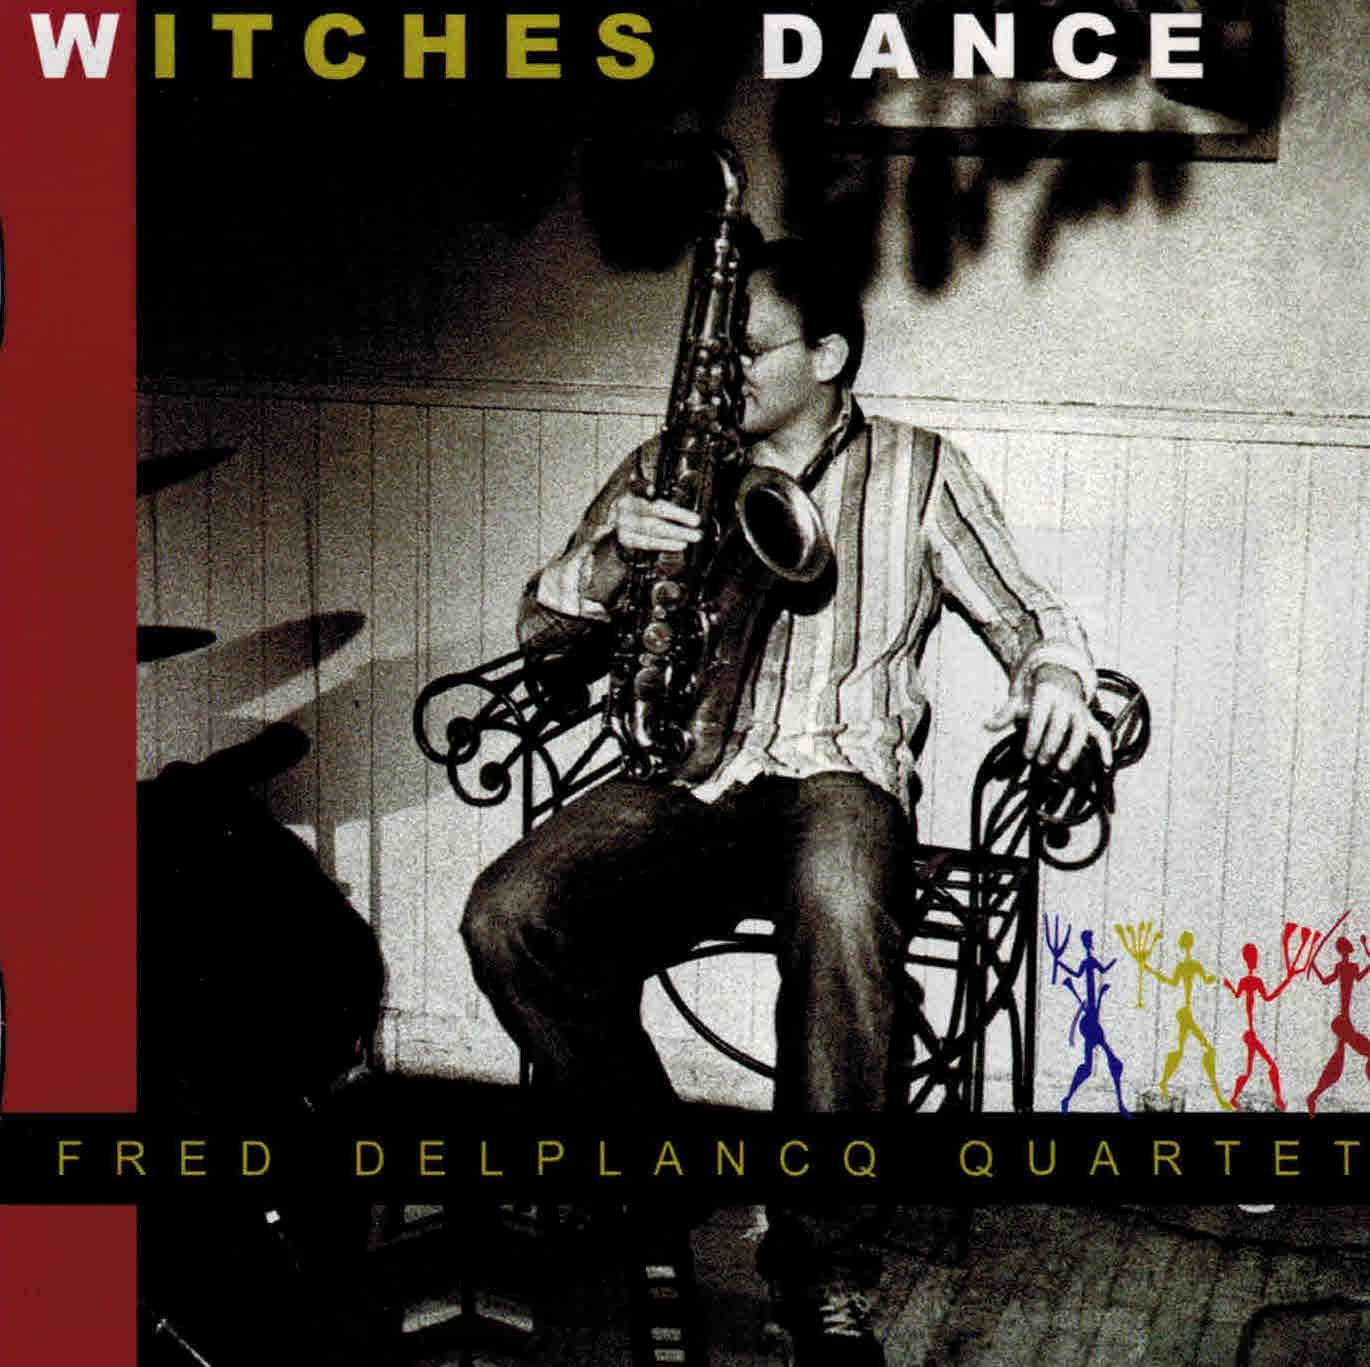 fred_delplancq - witches_dance